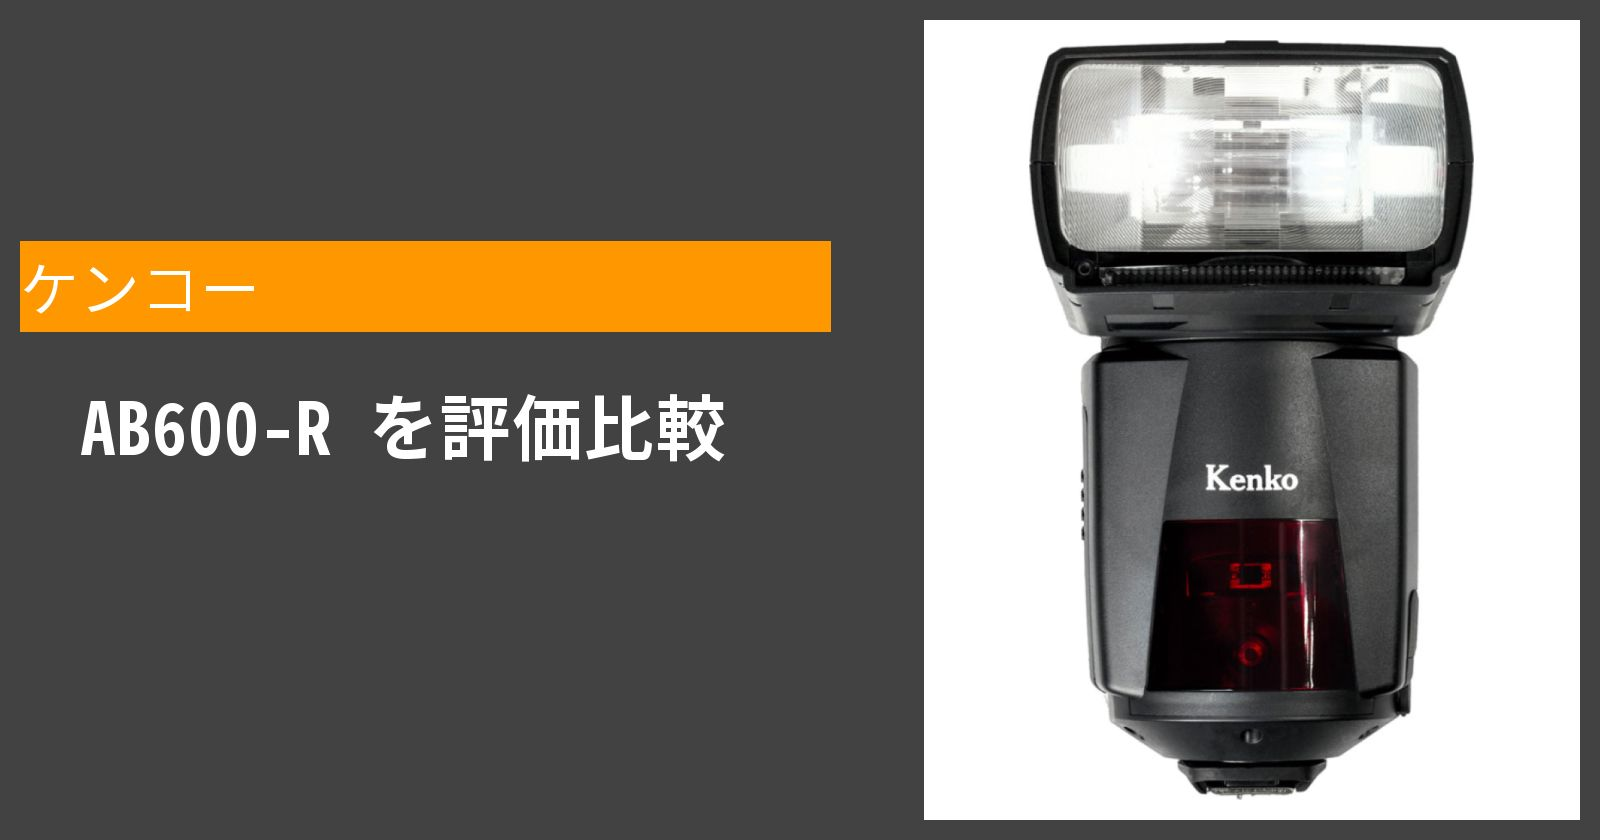 AB600-Rを徹底評価